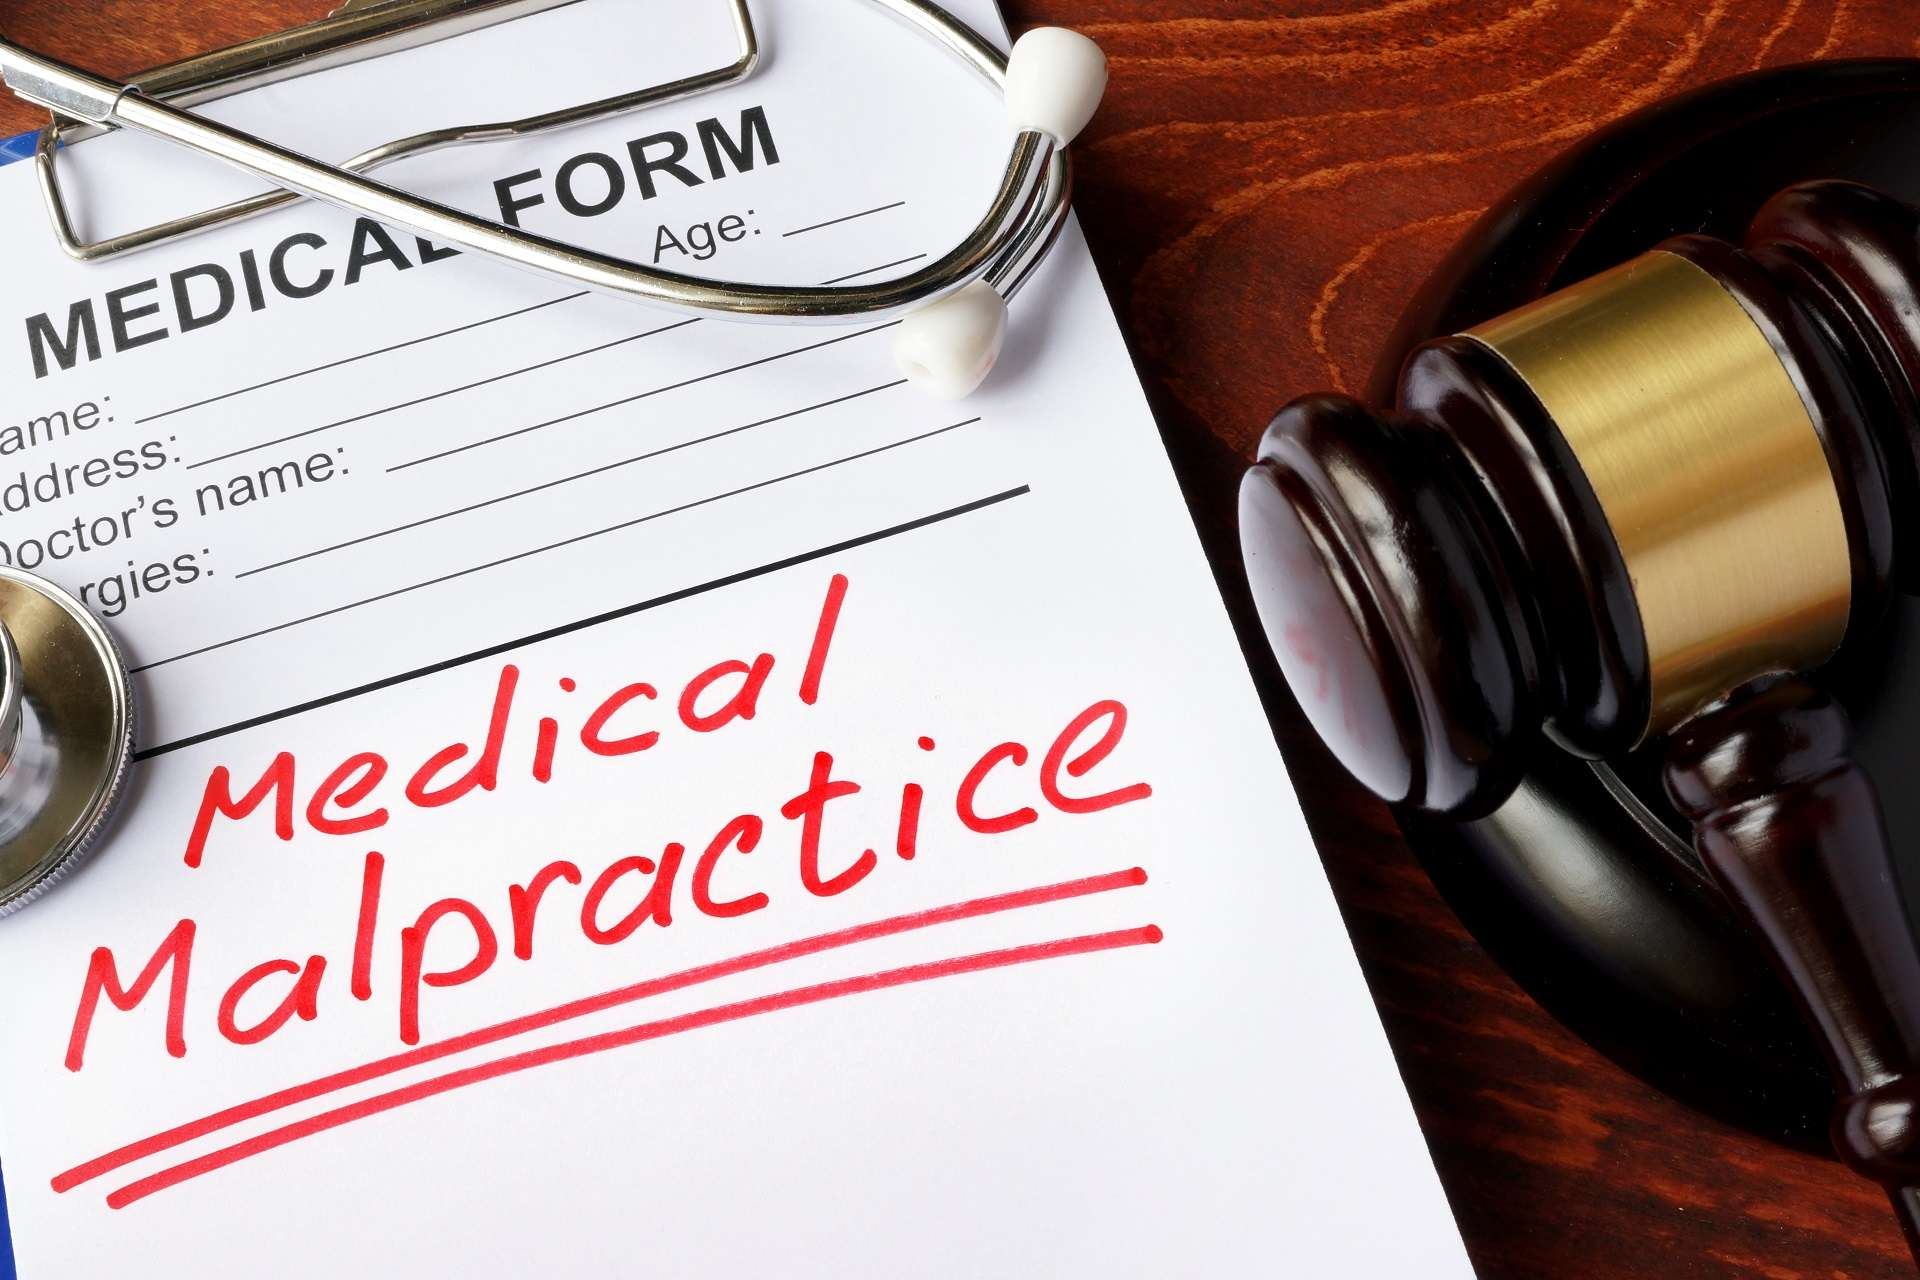 how to find complaints against a doctor or hospital?